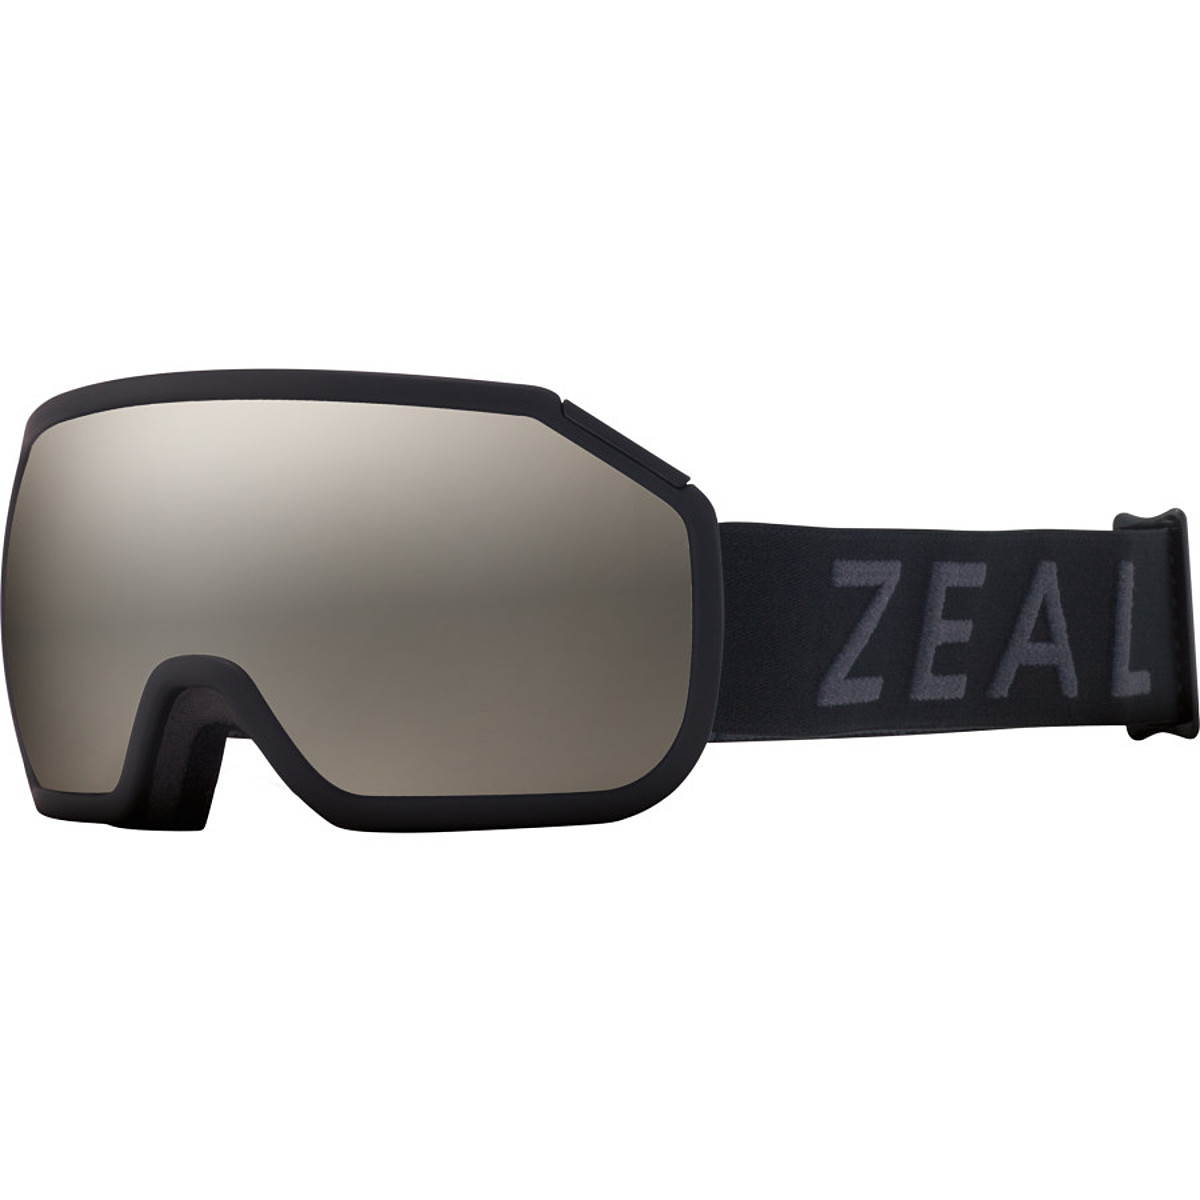 photo: Zeal Maniak Swatt goggle